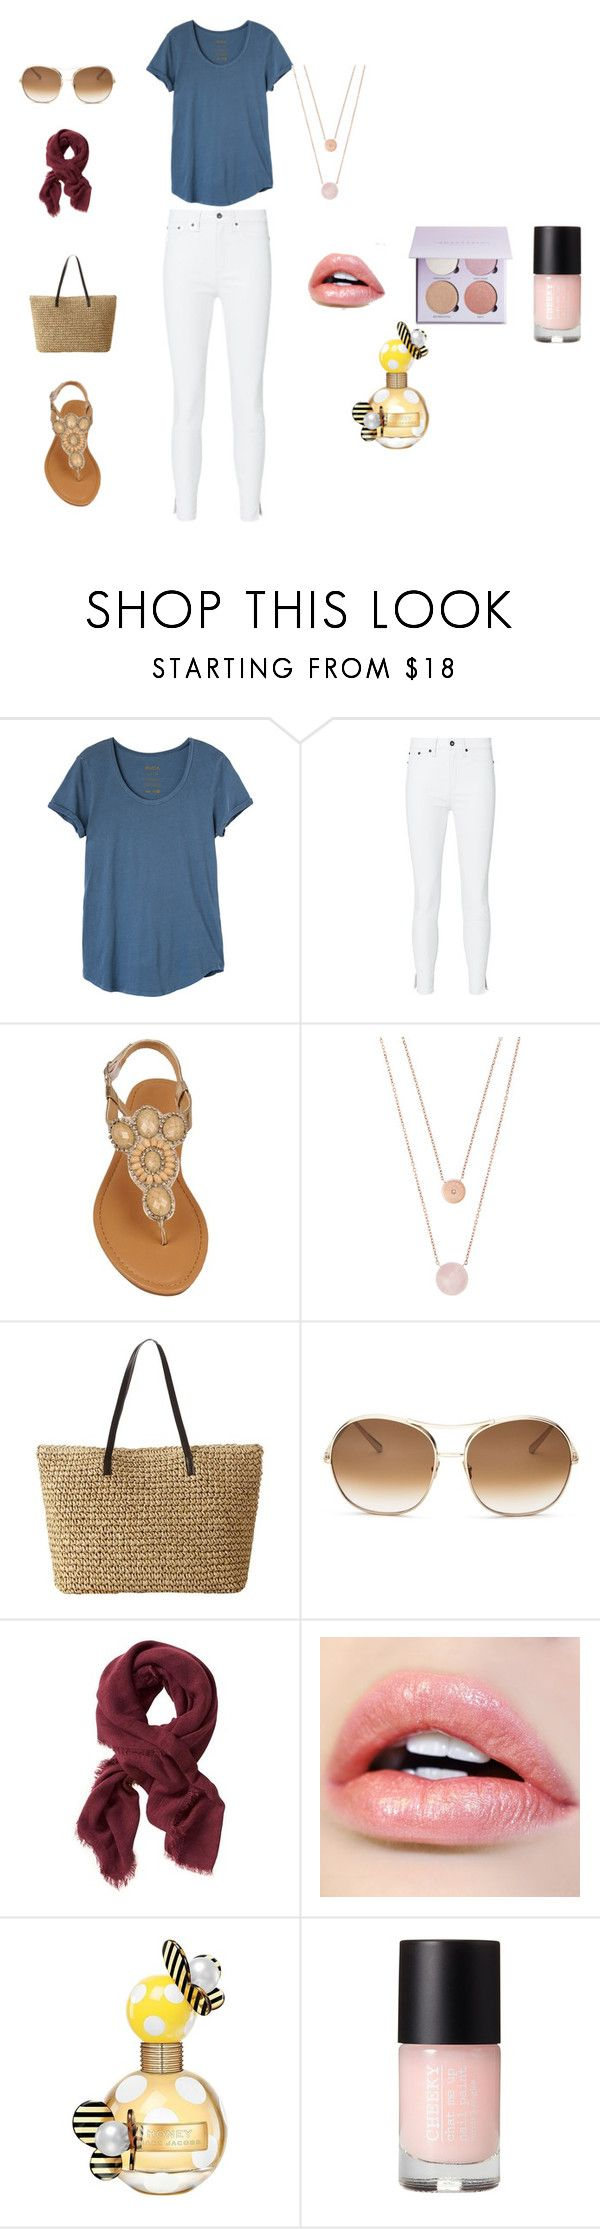 """Summer Picnic Outfit"" by perezbarrios on Polyvore featuring RVCA, rag & bone, Michael Kors, Chloé, Banana Republic and Marc Jacobs"